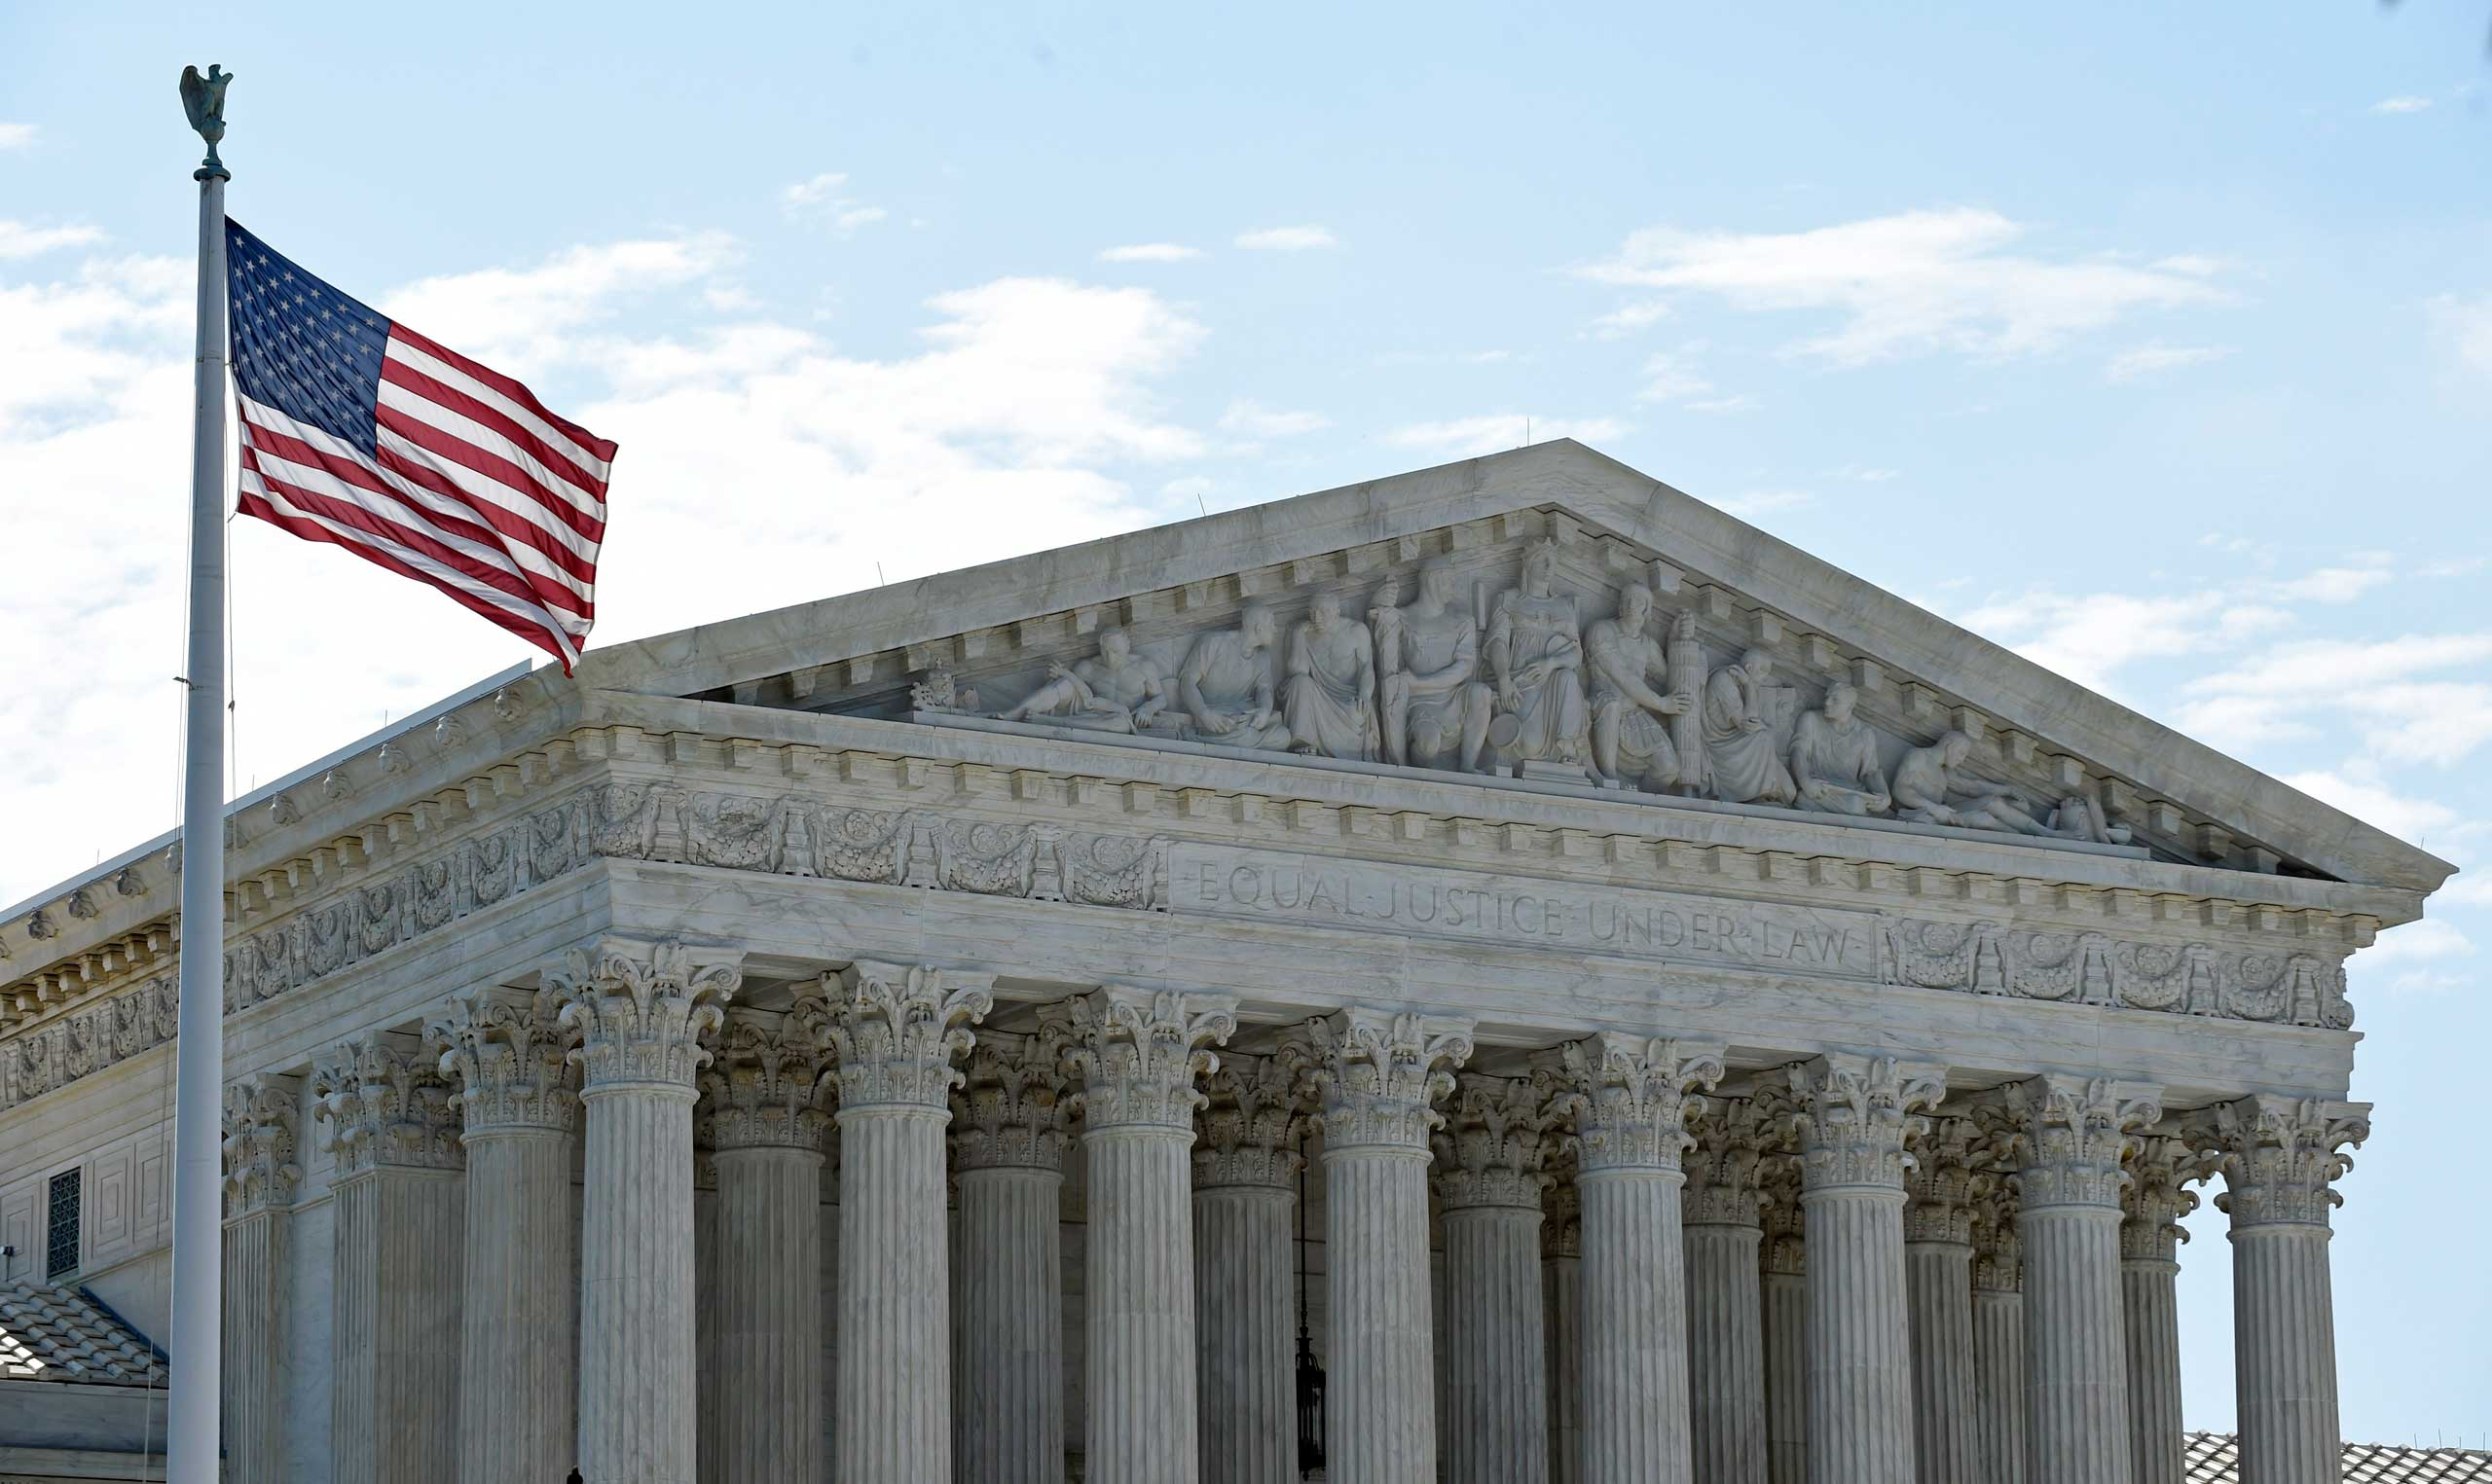 The American flag flies in the wind in front of the Supreme Court in Washington on June 22, 2015.